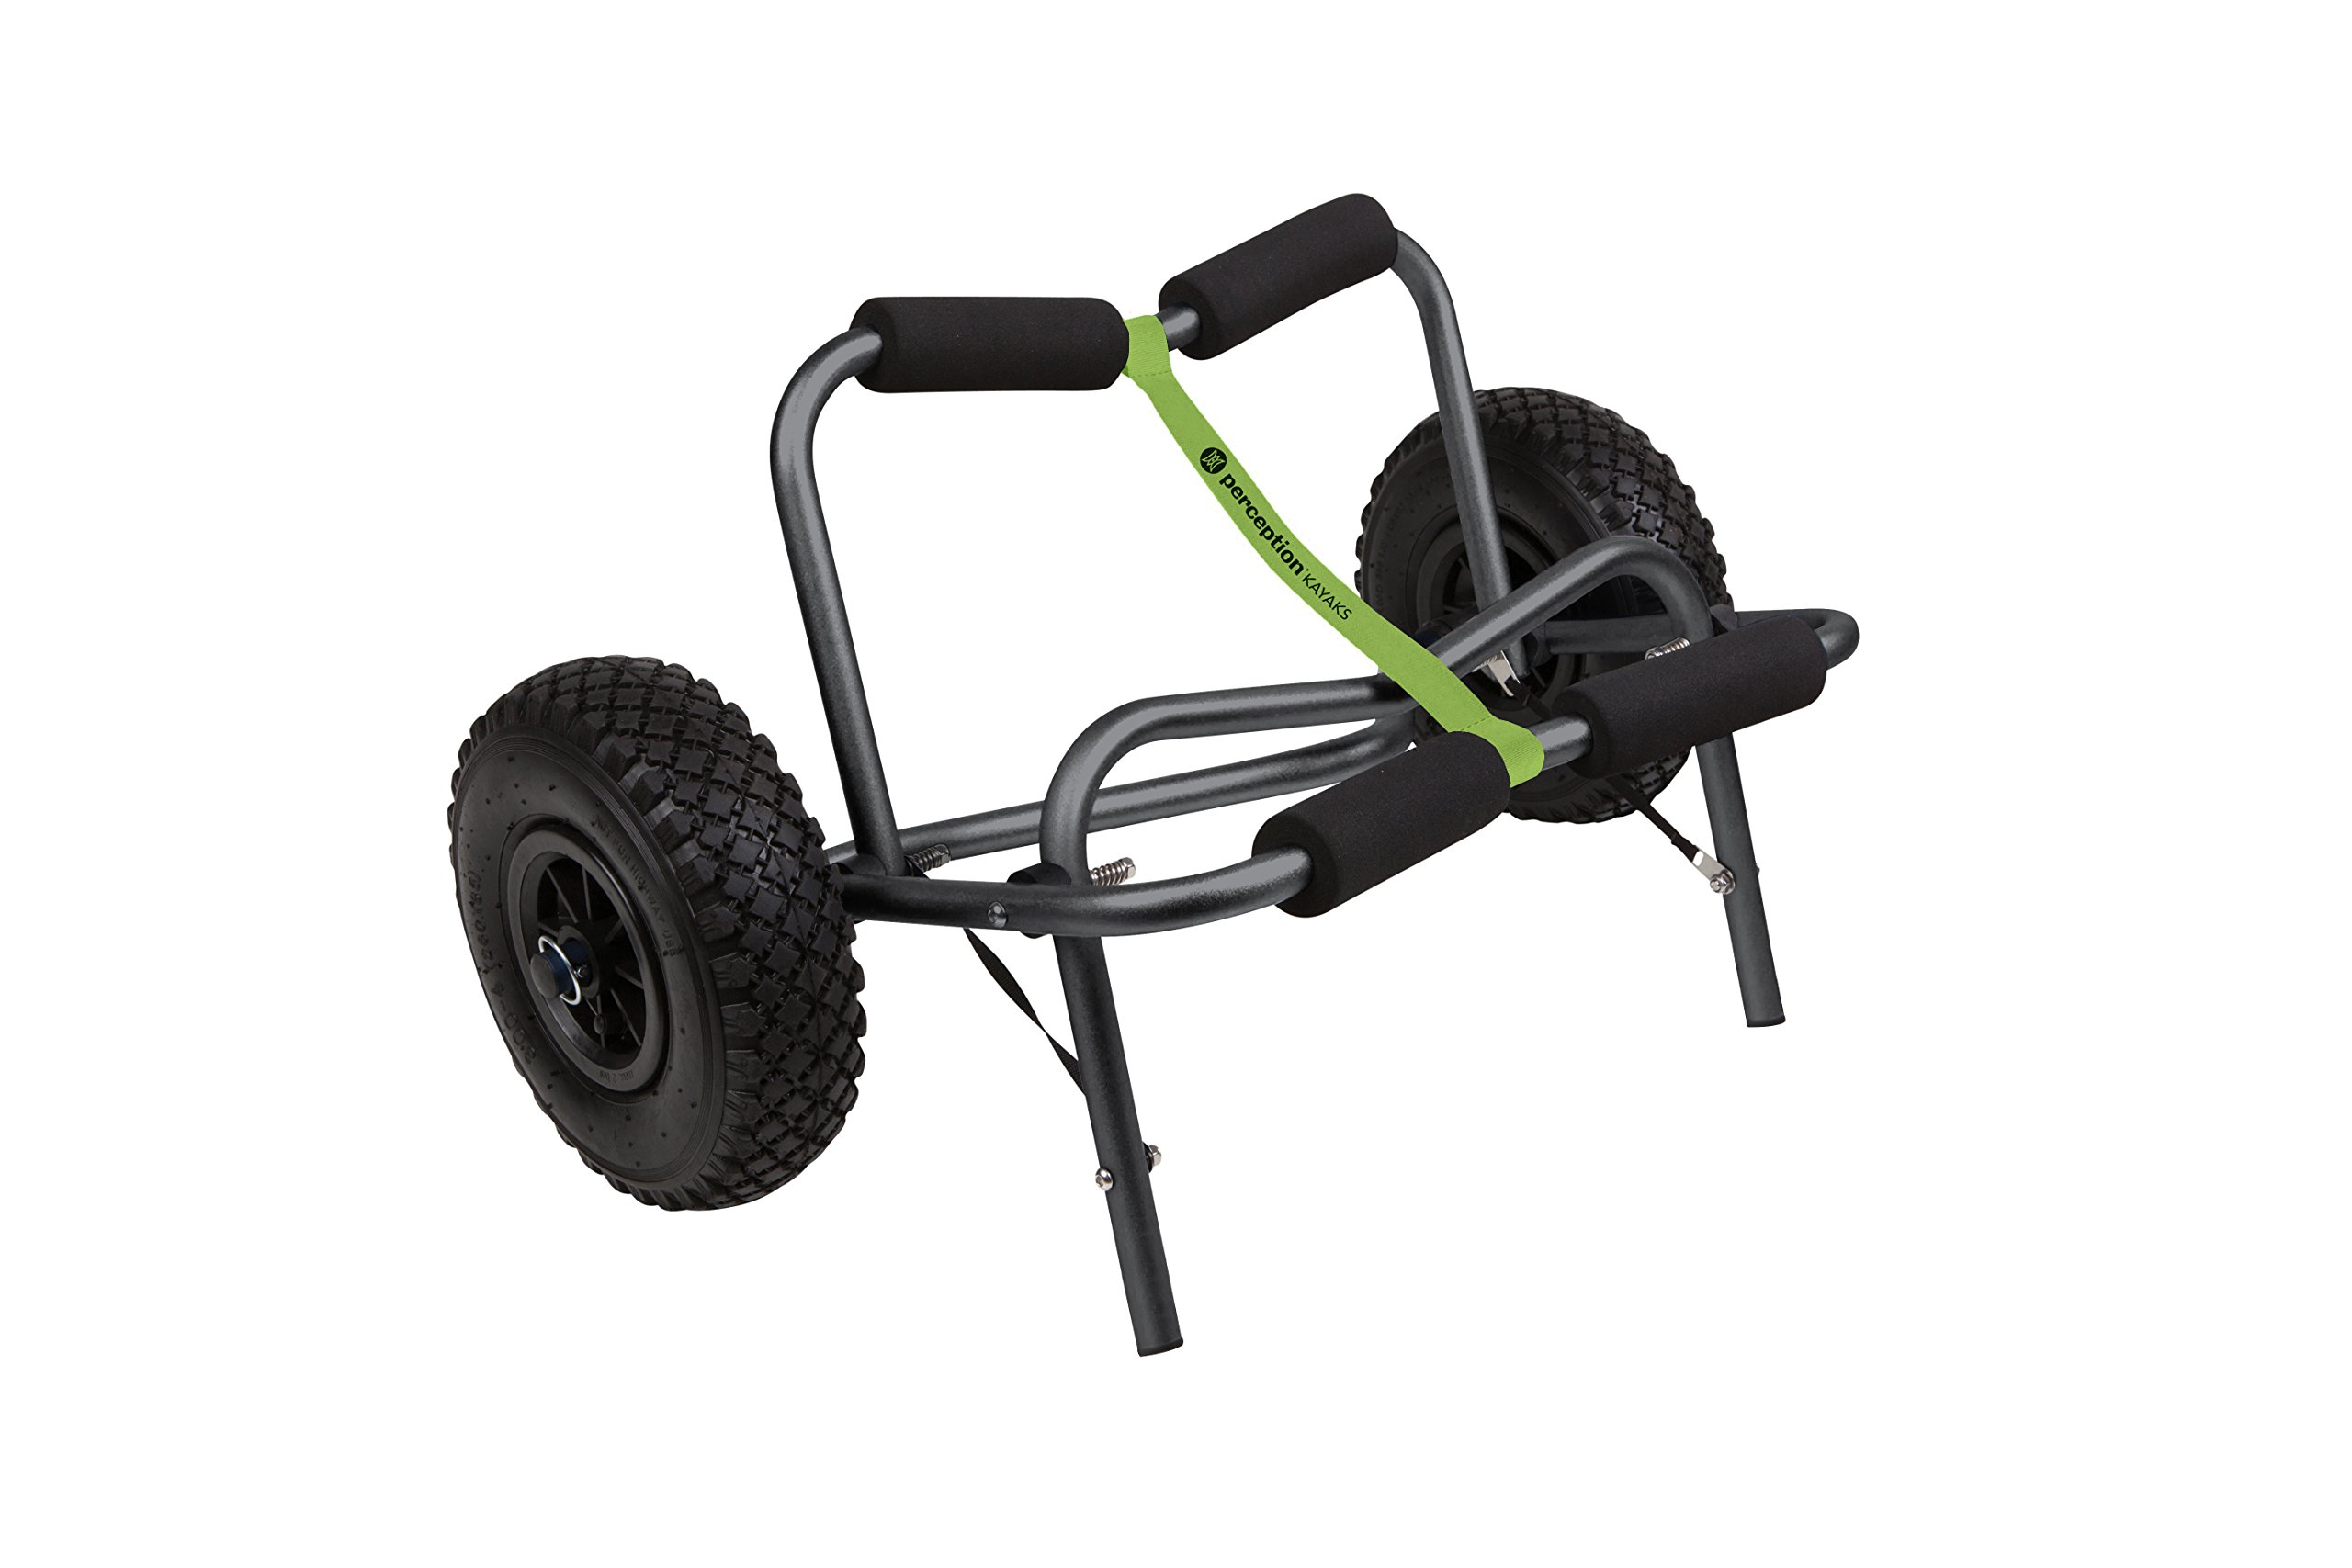 Perception Large Kayak Cart with Foam Wheels - for use on Sand/Pavement by Perception Kayaks